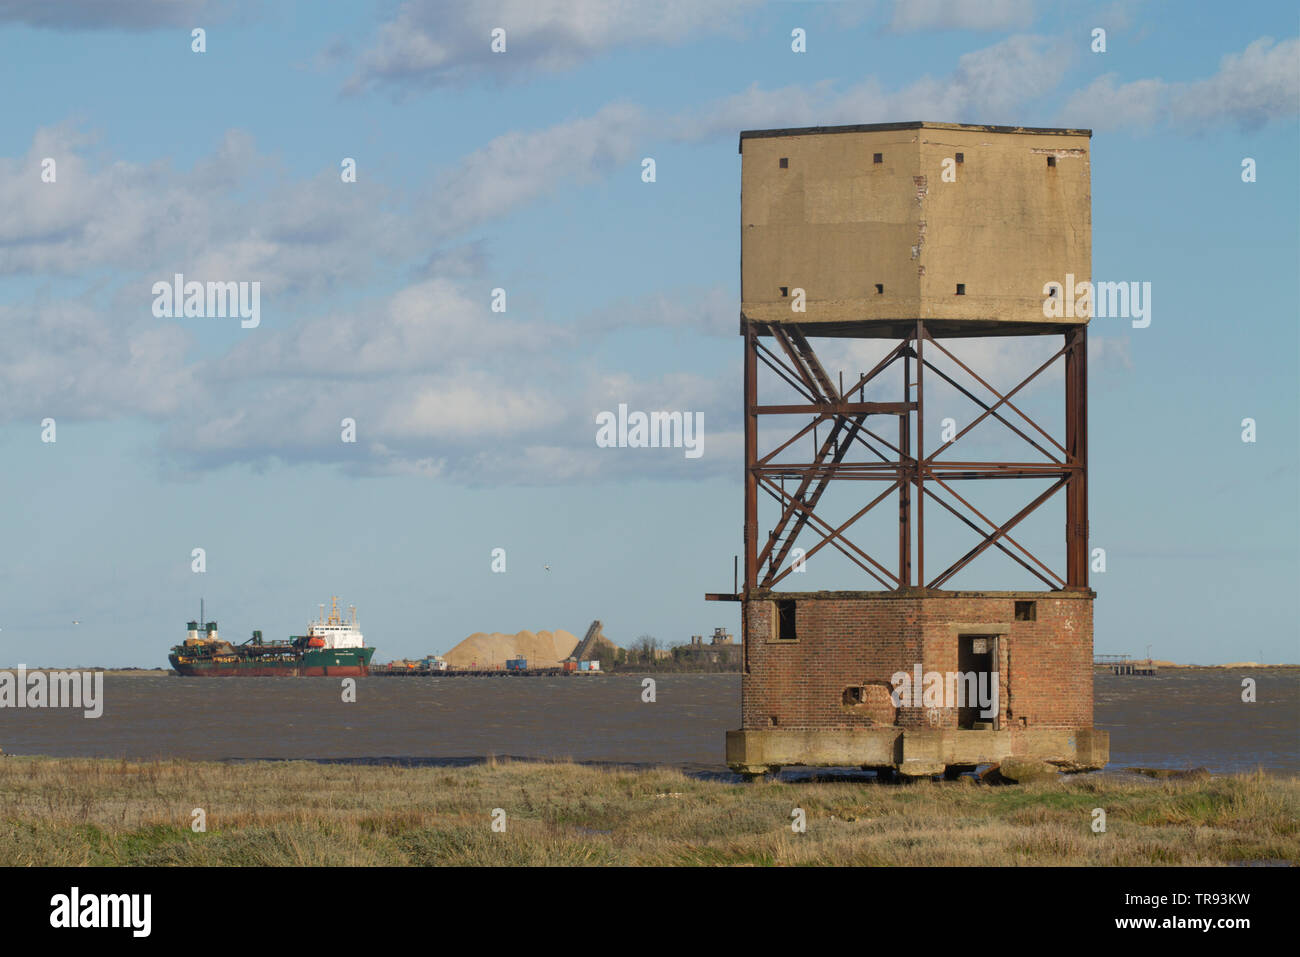 A disused World War 2 radar control tower disguised as a water tower on the banks of the river Thames near Coalhouse Fort, Tilbury, Essex. - Stock Image